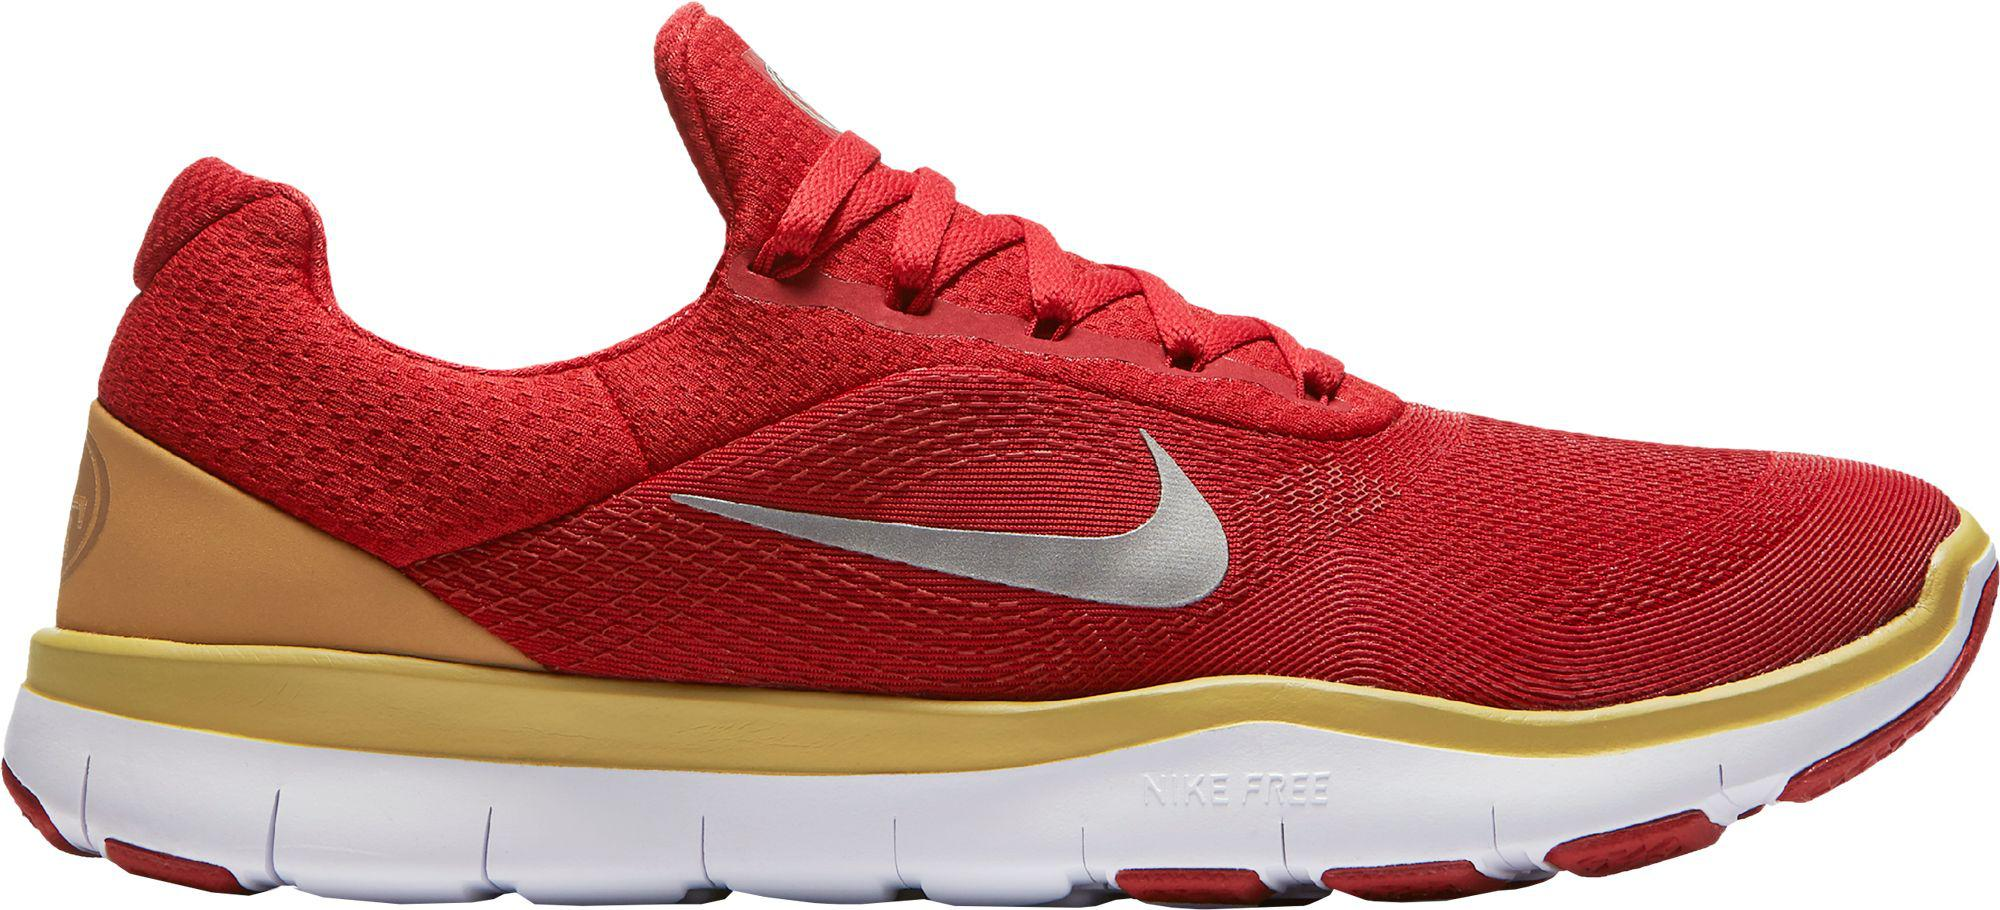 6671d949b6d Lyst - Nike Free Trainer V7 Nfl 49ers Training Shoes in Red for Men